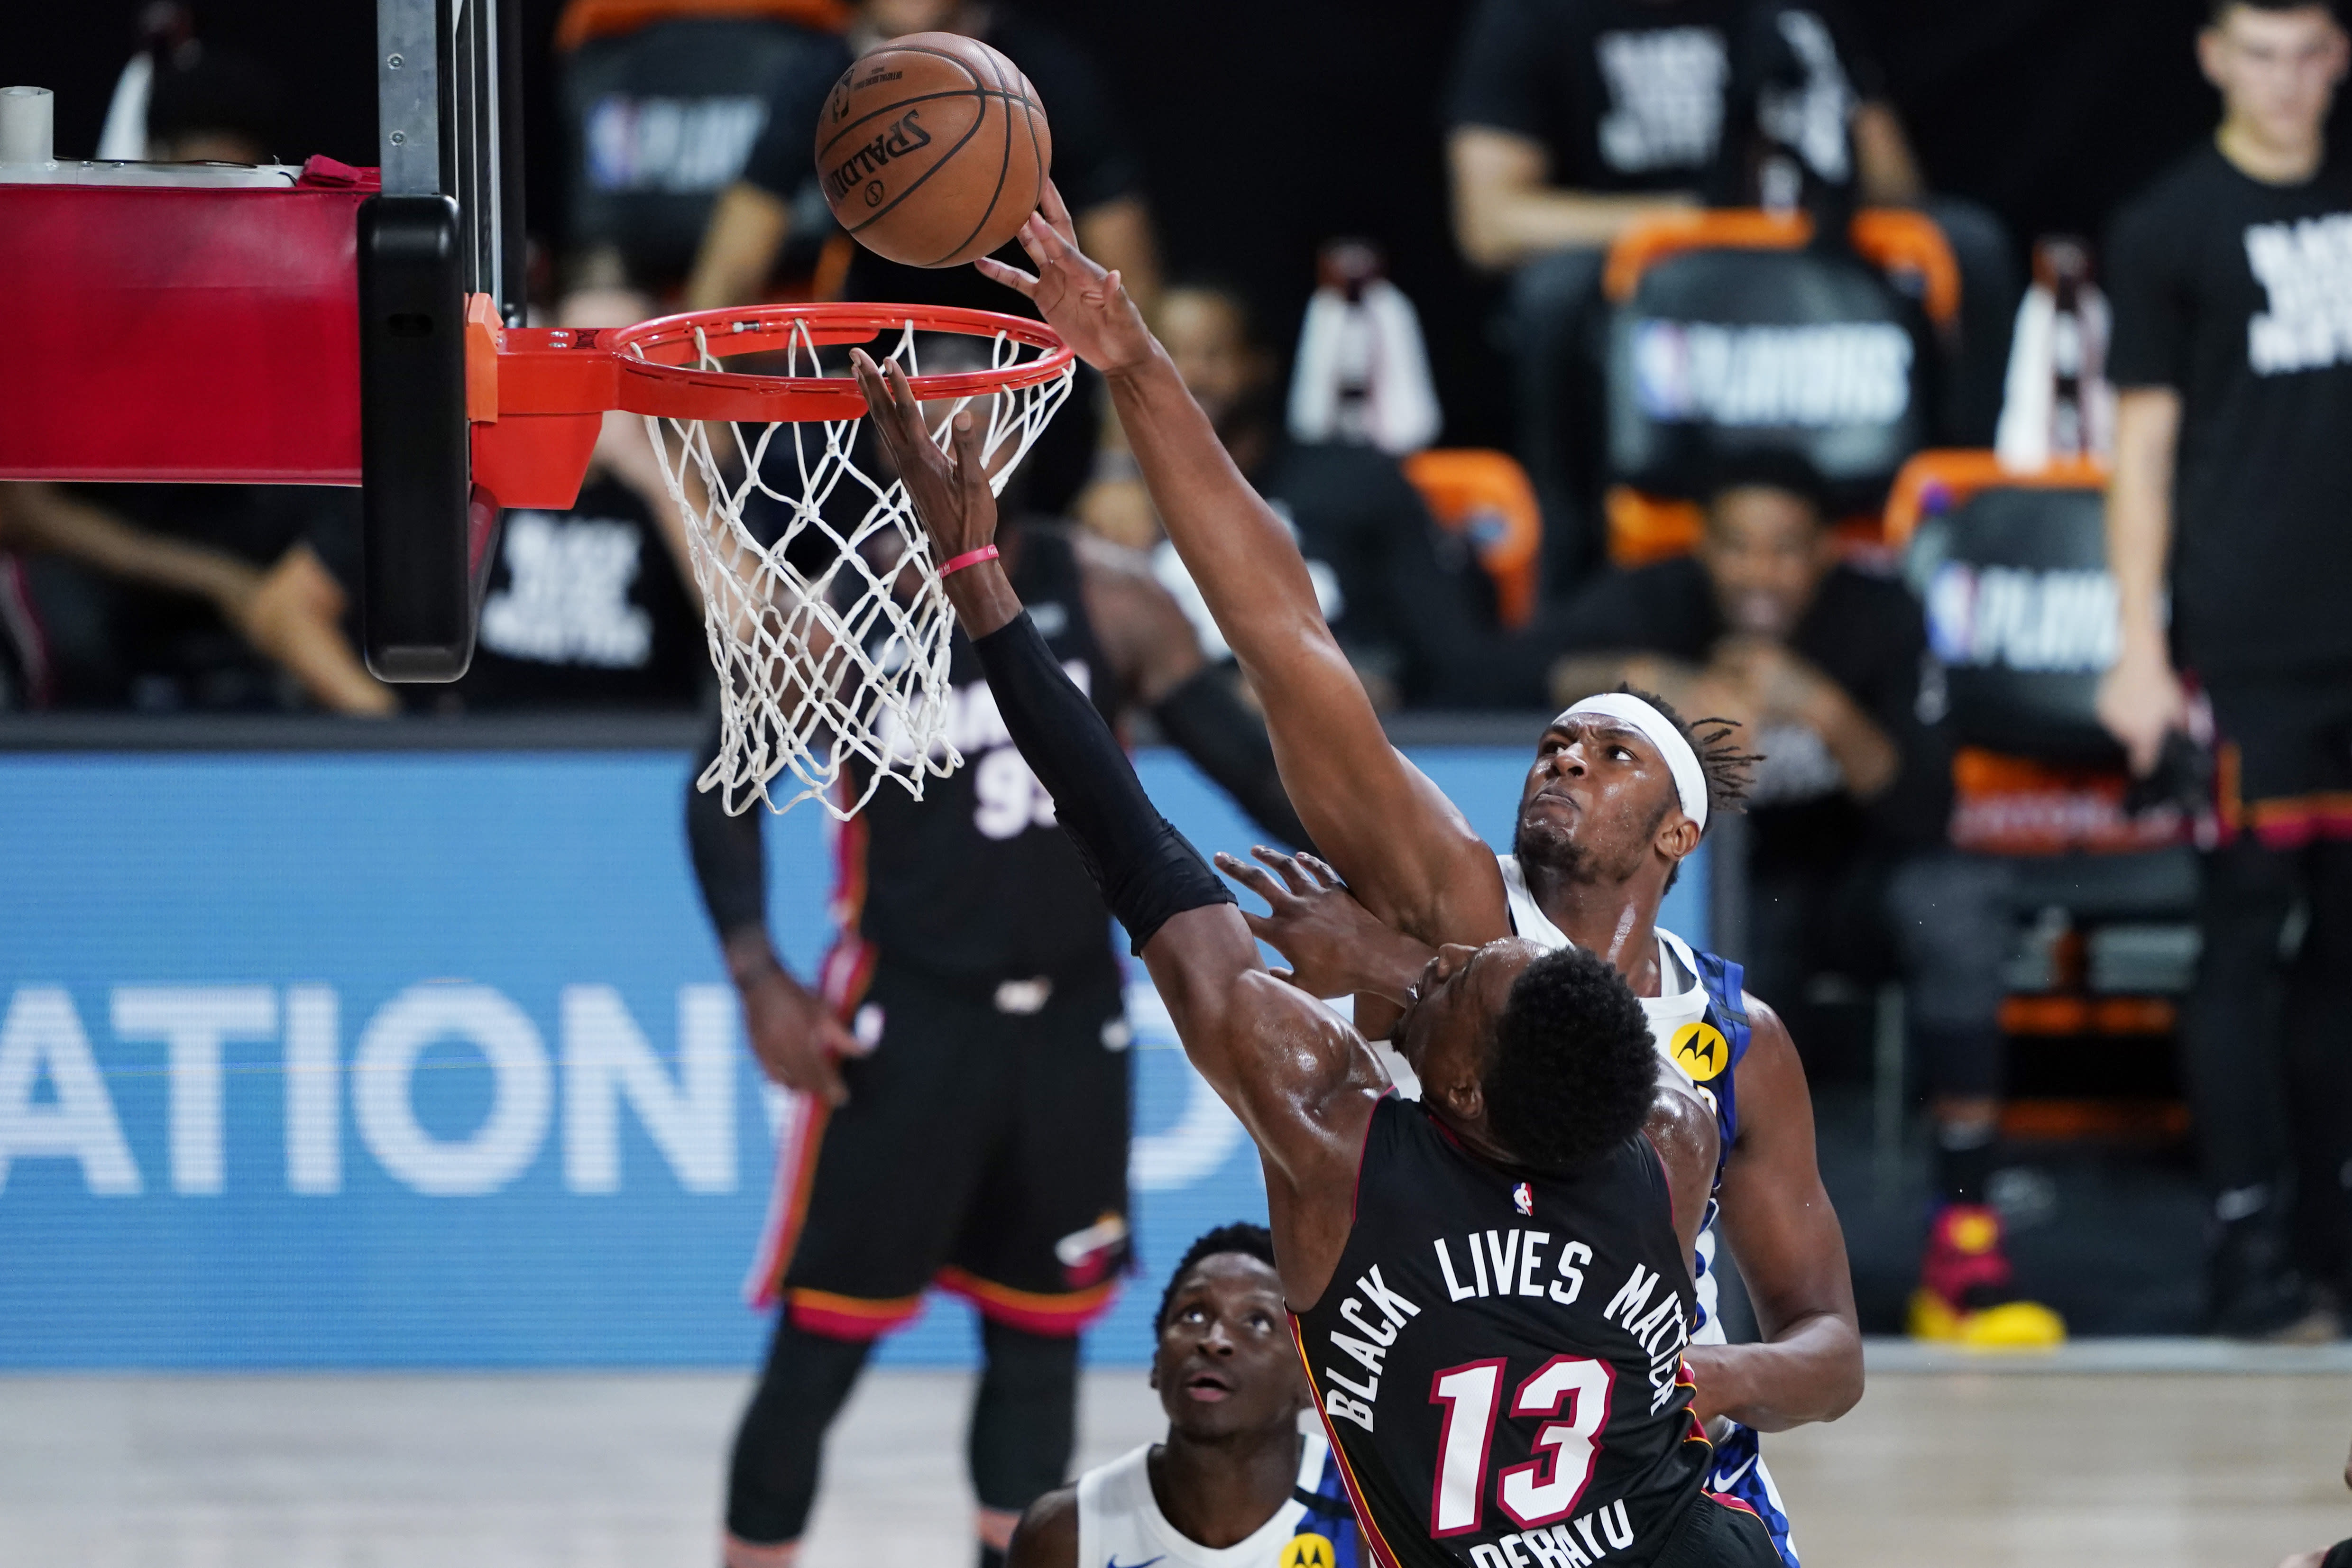 Indiana Pacers center Myles Turner (33) blocks a shot by Miami Heat forward Bam Adebayo (13) during the second half of an NBA basketball first round playoff game, Saturday, Aug. 22, 2020, in Lake Buena Vista, Fla. (AP Photo/Ashley Landis, Pool)